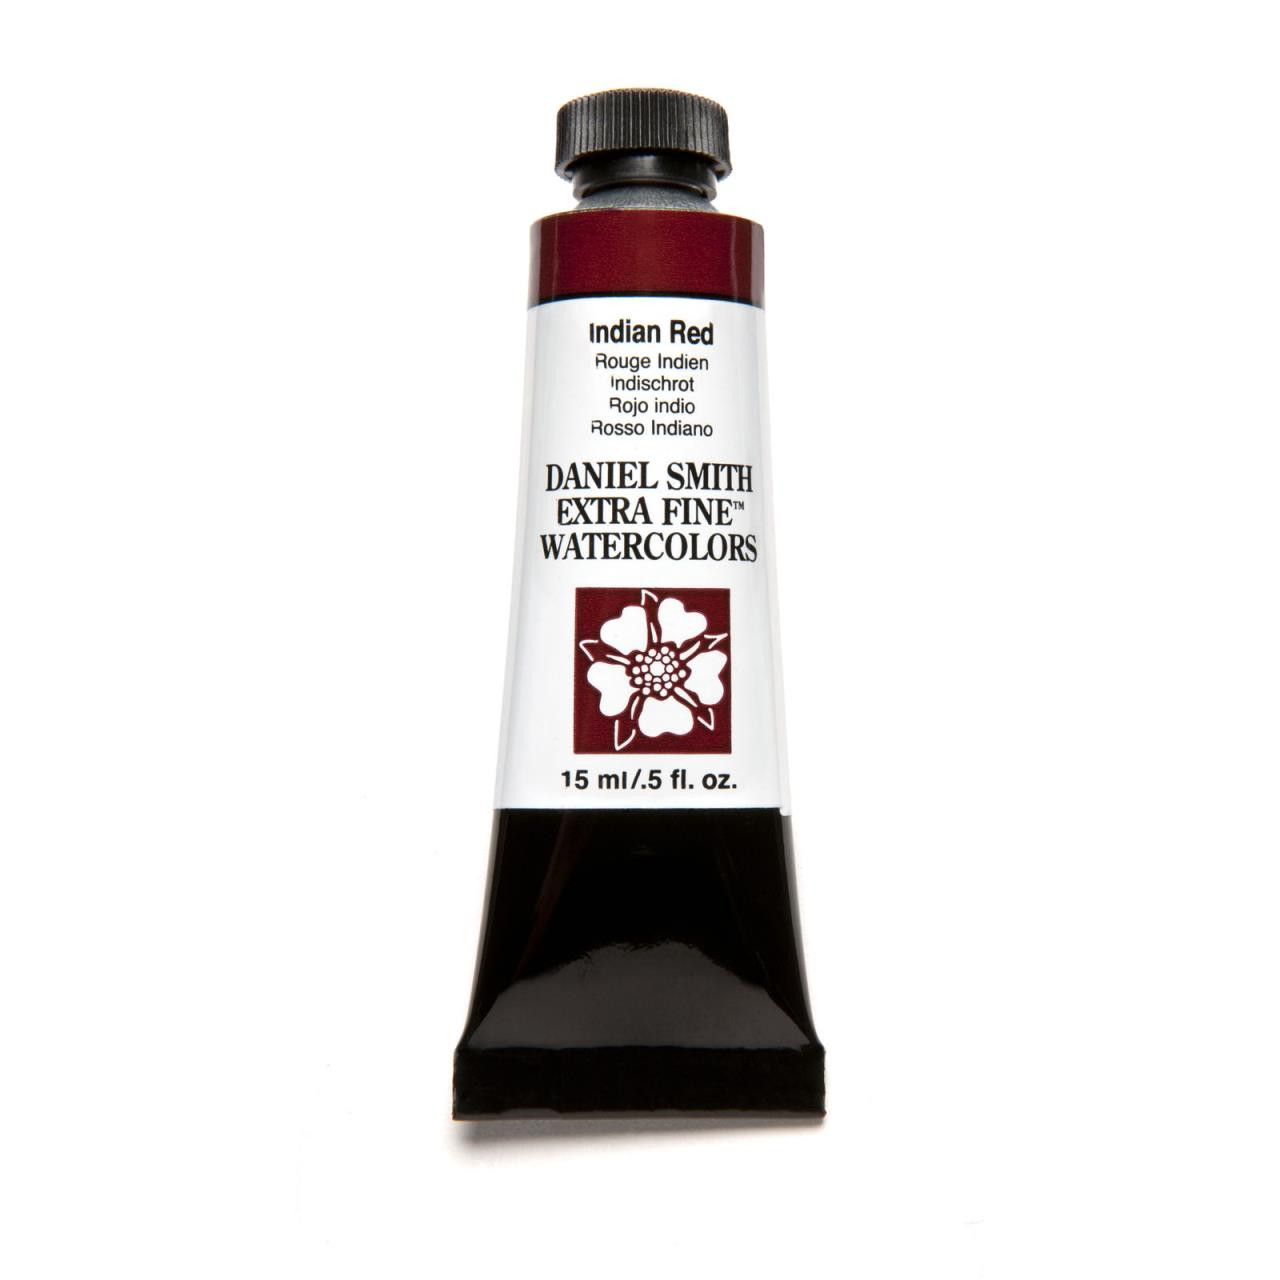 Indian Red, DANIEL SMITH Extra Fine Watercolors 15ml Tubes -